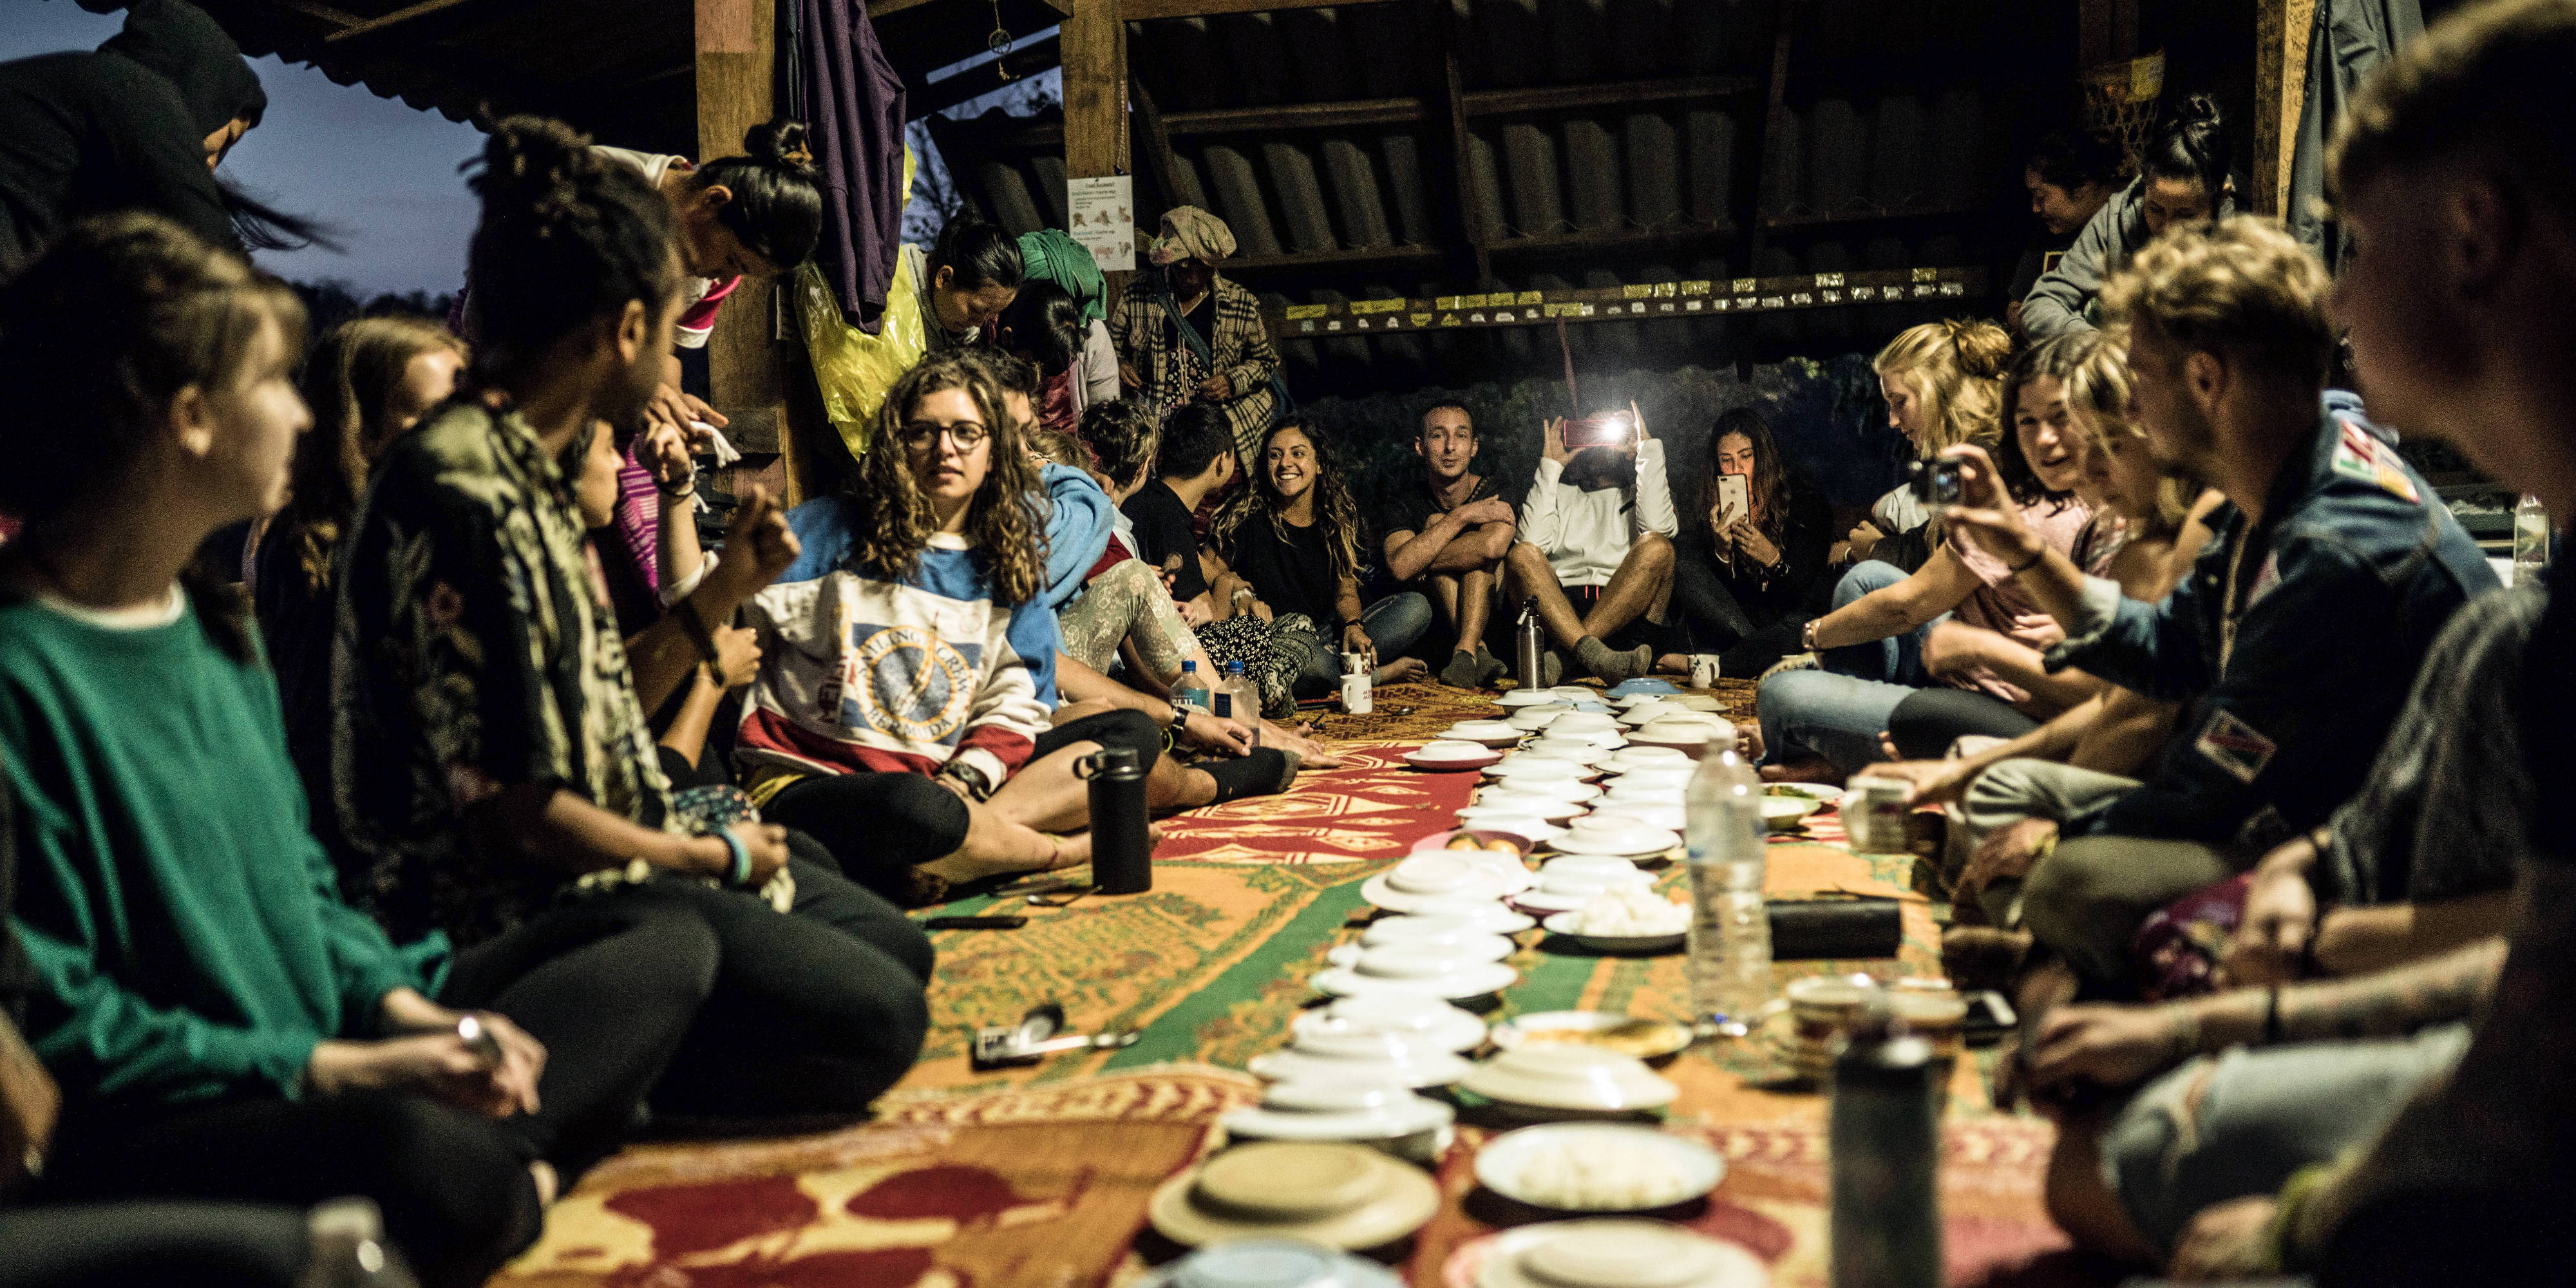 Paying to volunteer with GVI means that all your food and accommodation will be covered. Pictured: GVI volunteers share a meal in the Chiang Mai base.